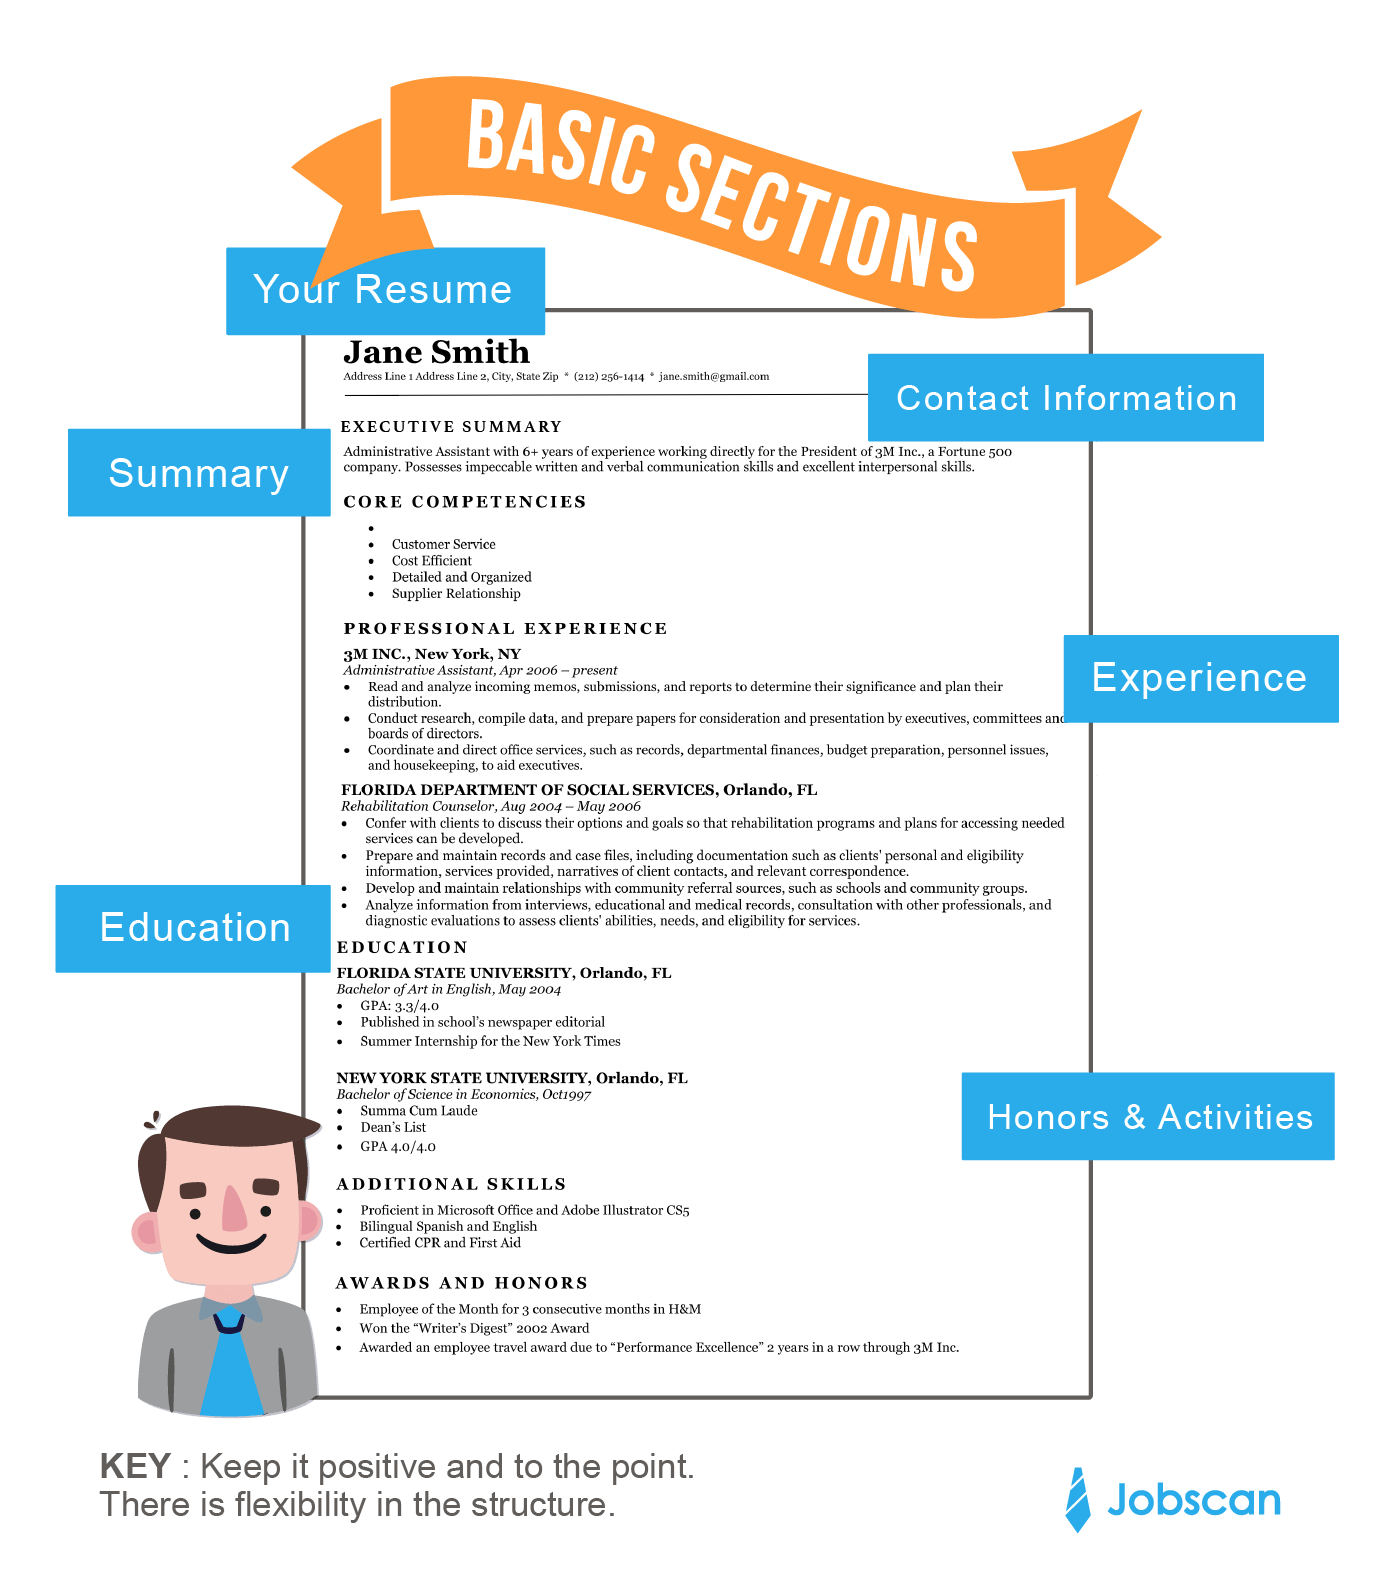 Resume Templates Guide Jobscan